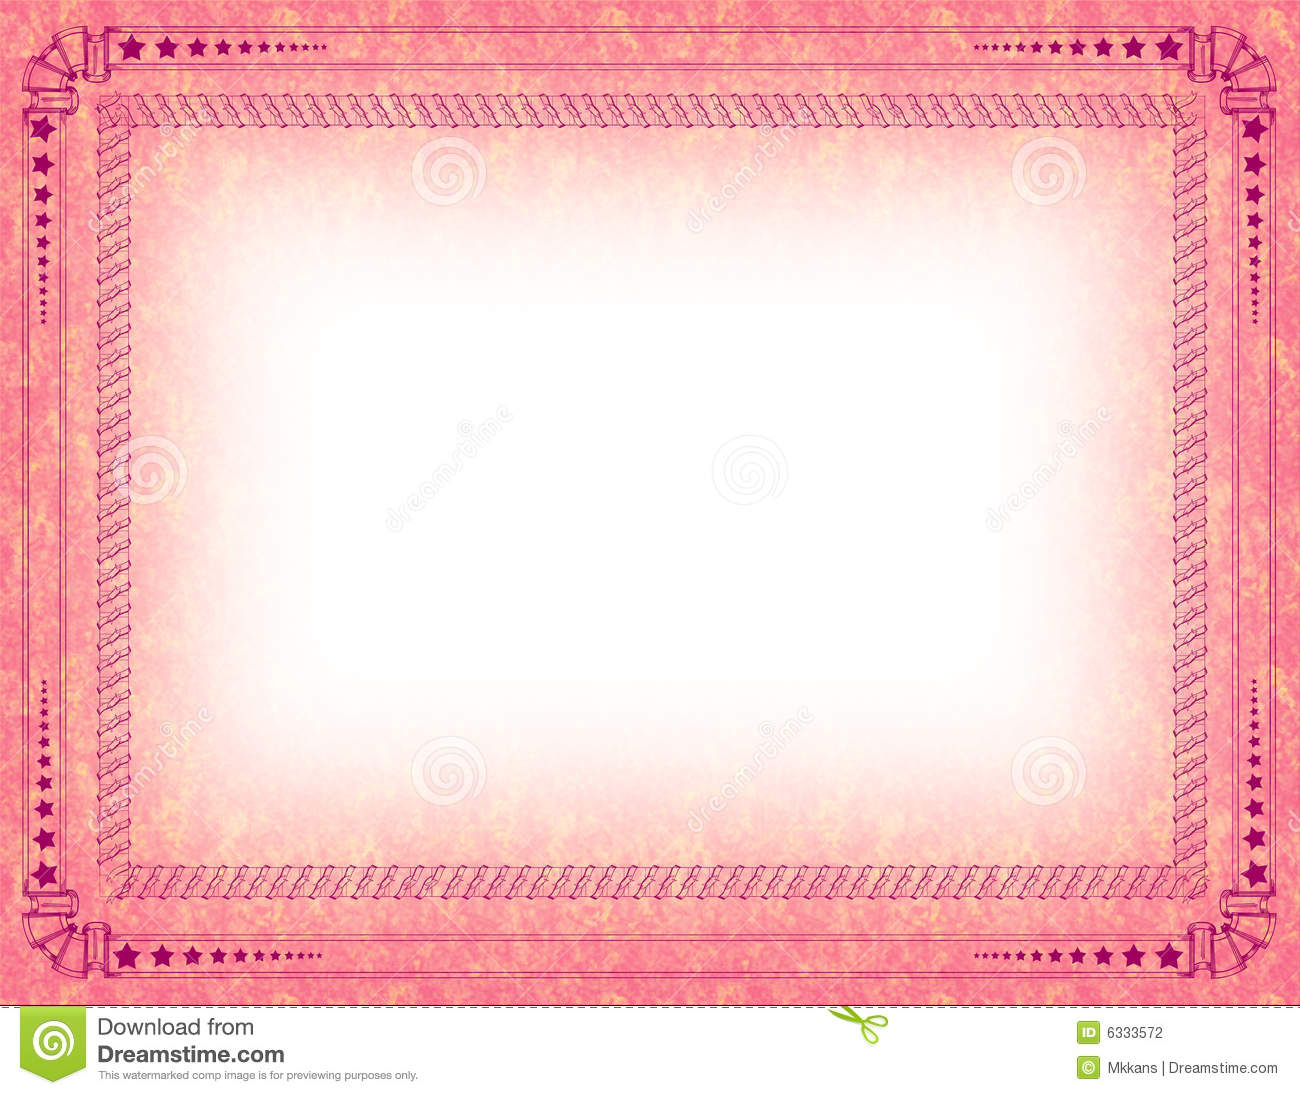 Certificate border stock illustration. Illustration of ...